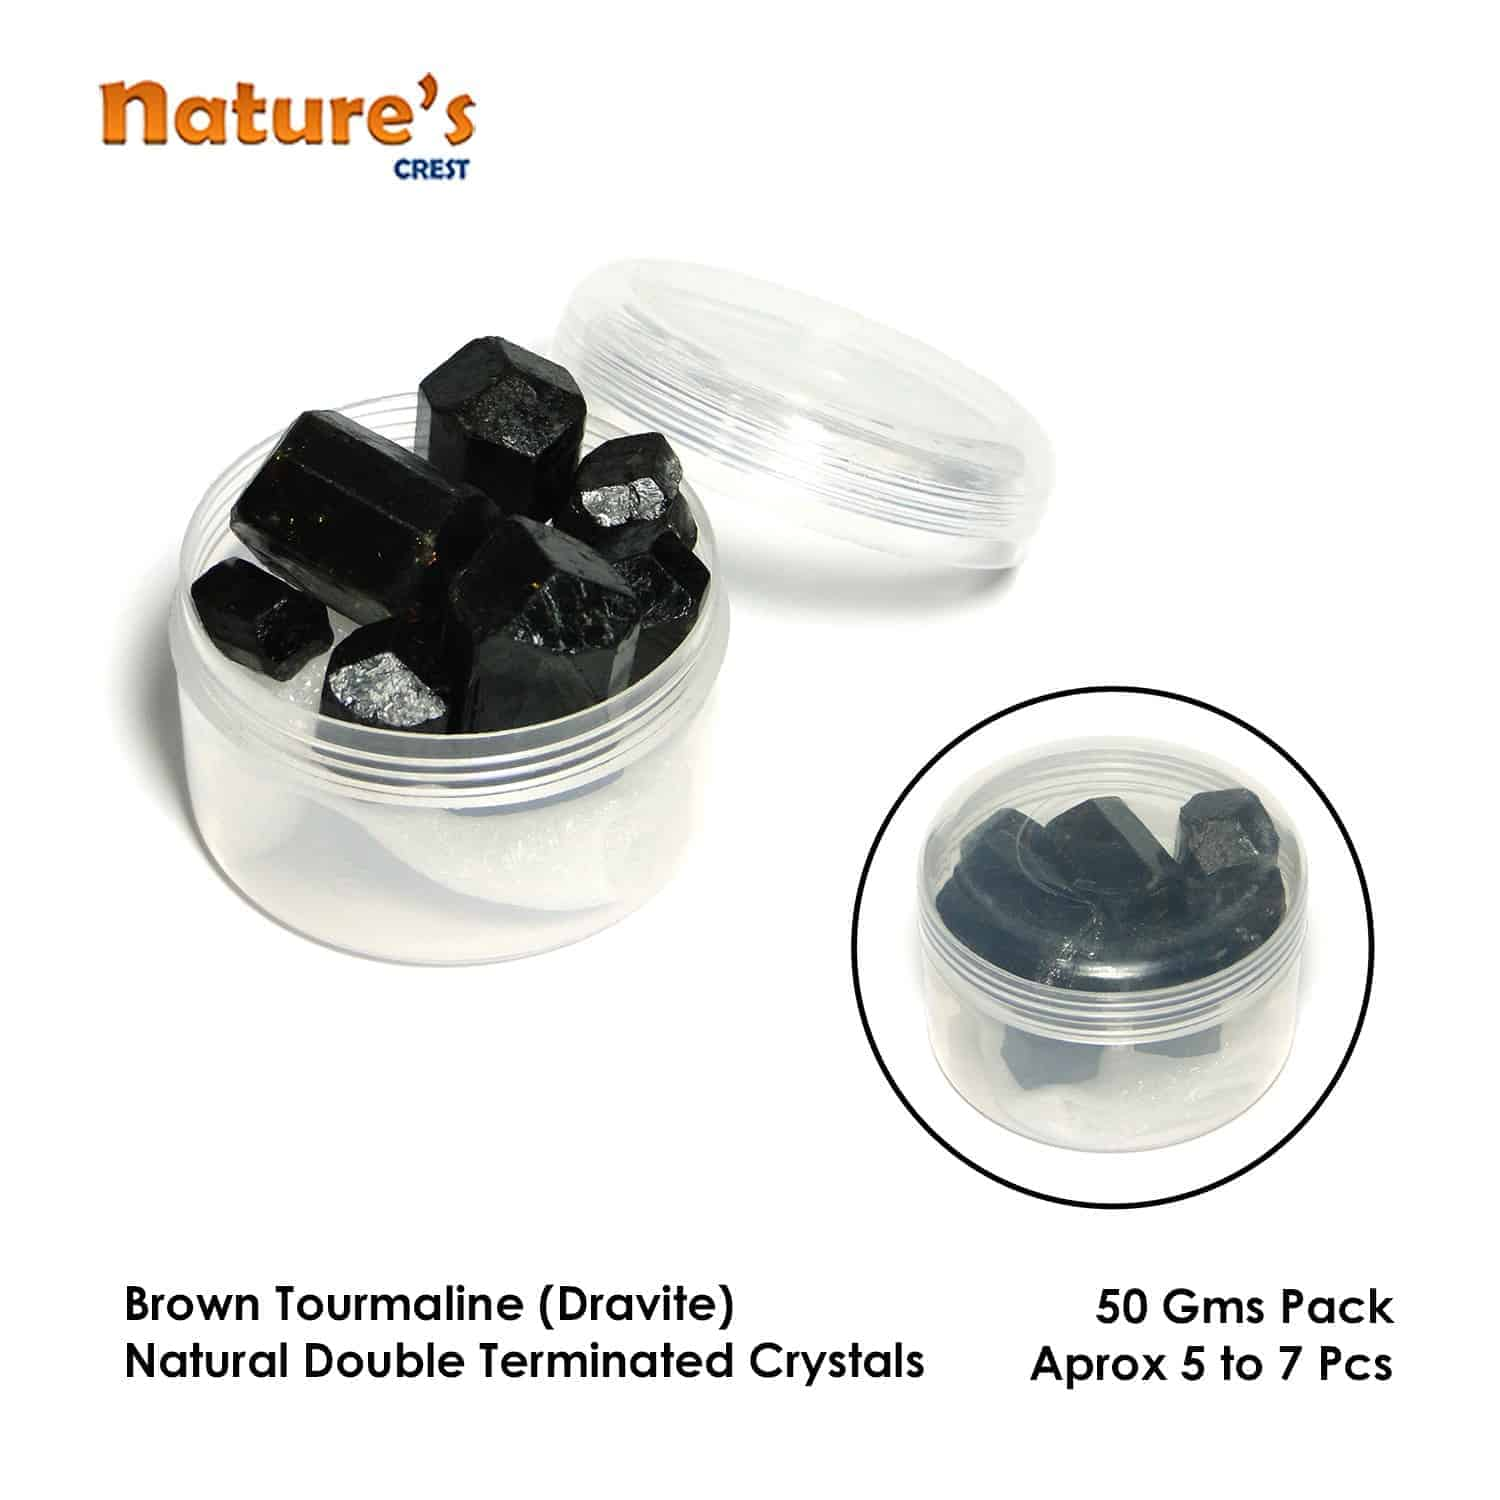 Brown Tourmaline (Dravite) Double Terminated Natural Raw Rough Crystals Nature's Crest RC013 ₹399.00